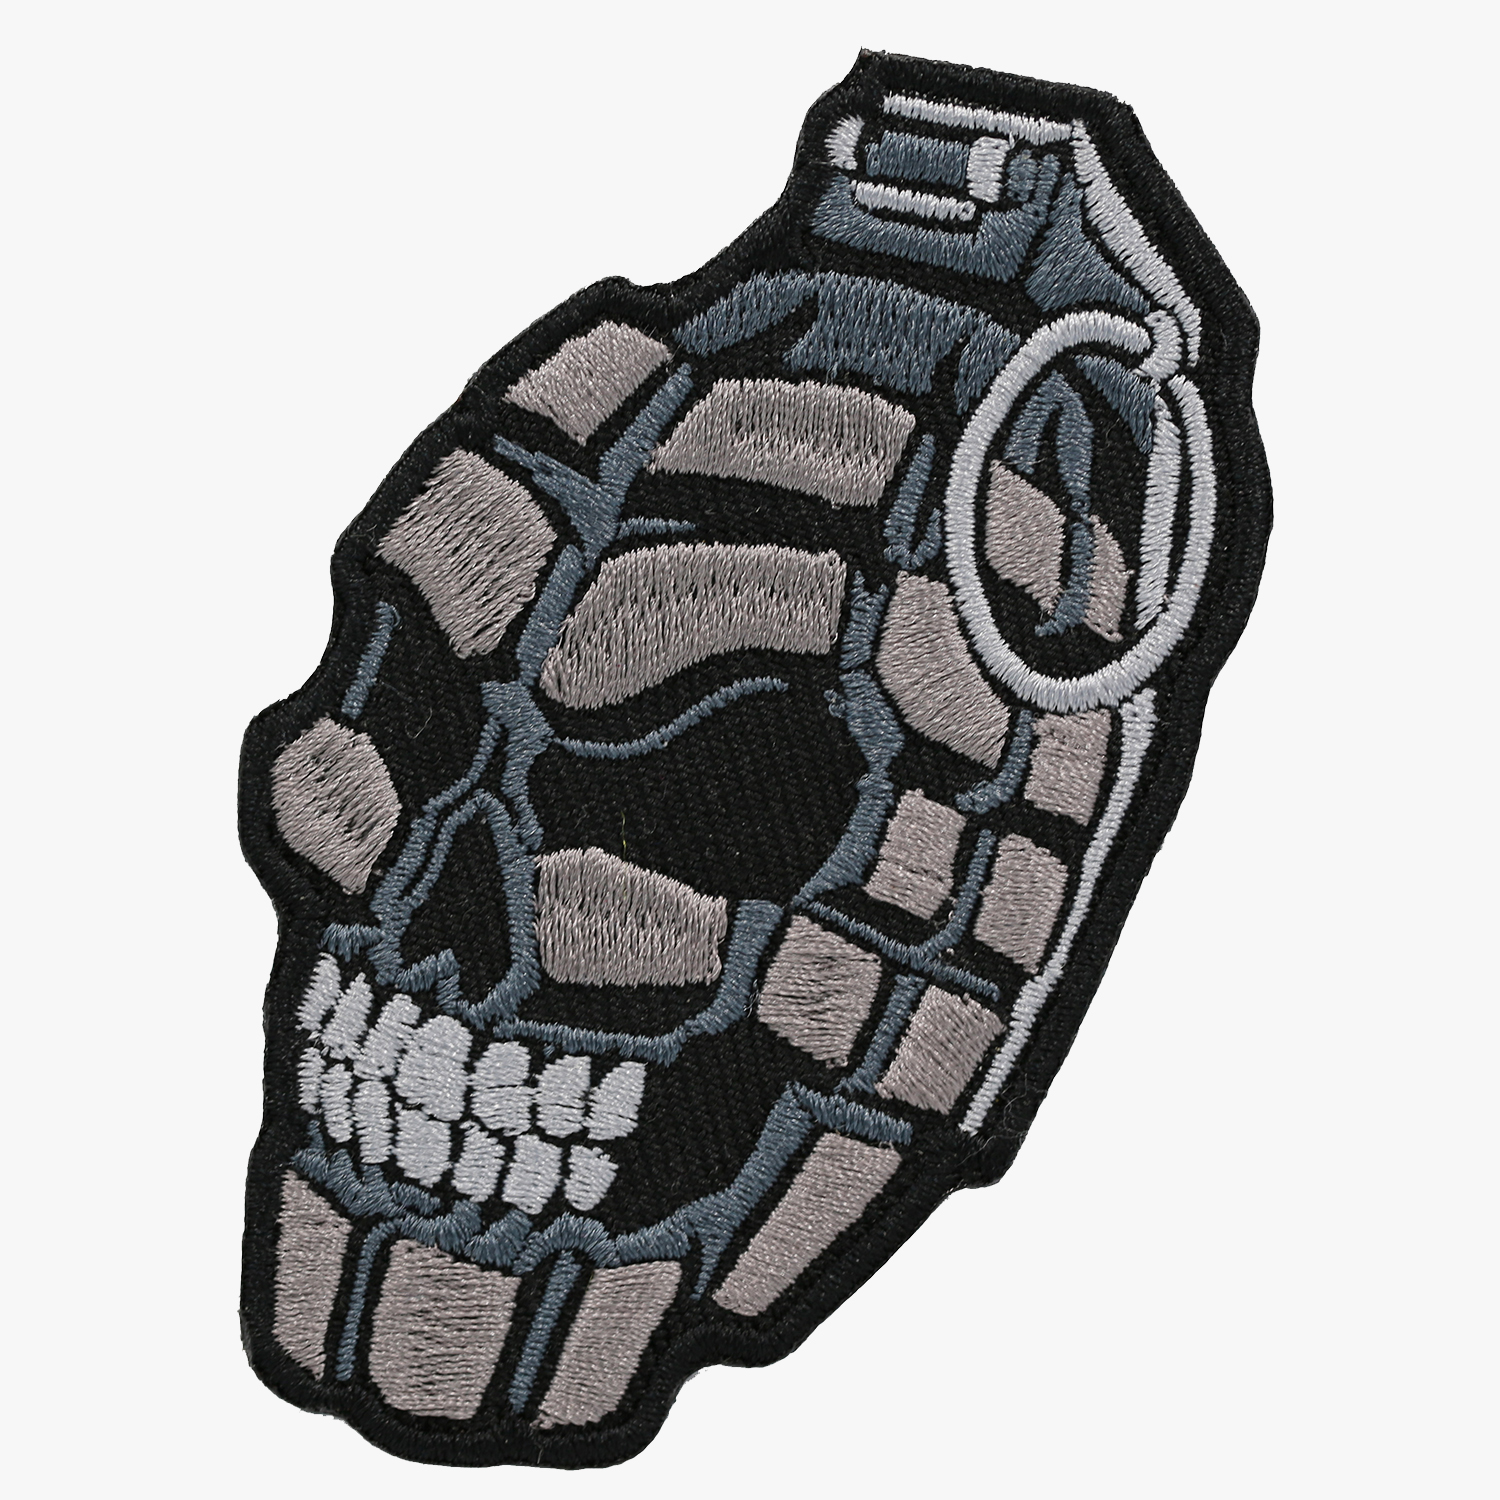 GRANADA SKULL BIKER NC PATCHES